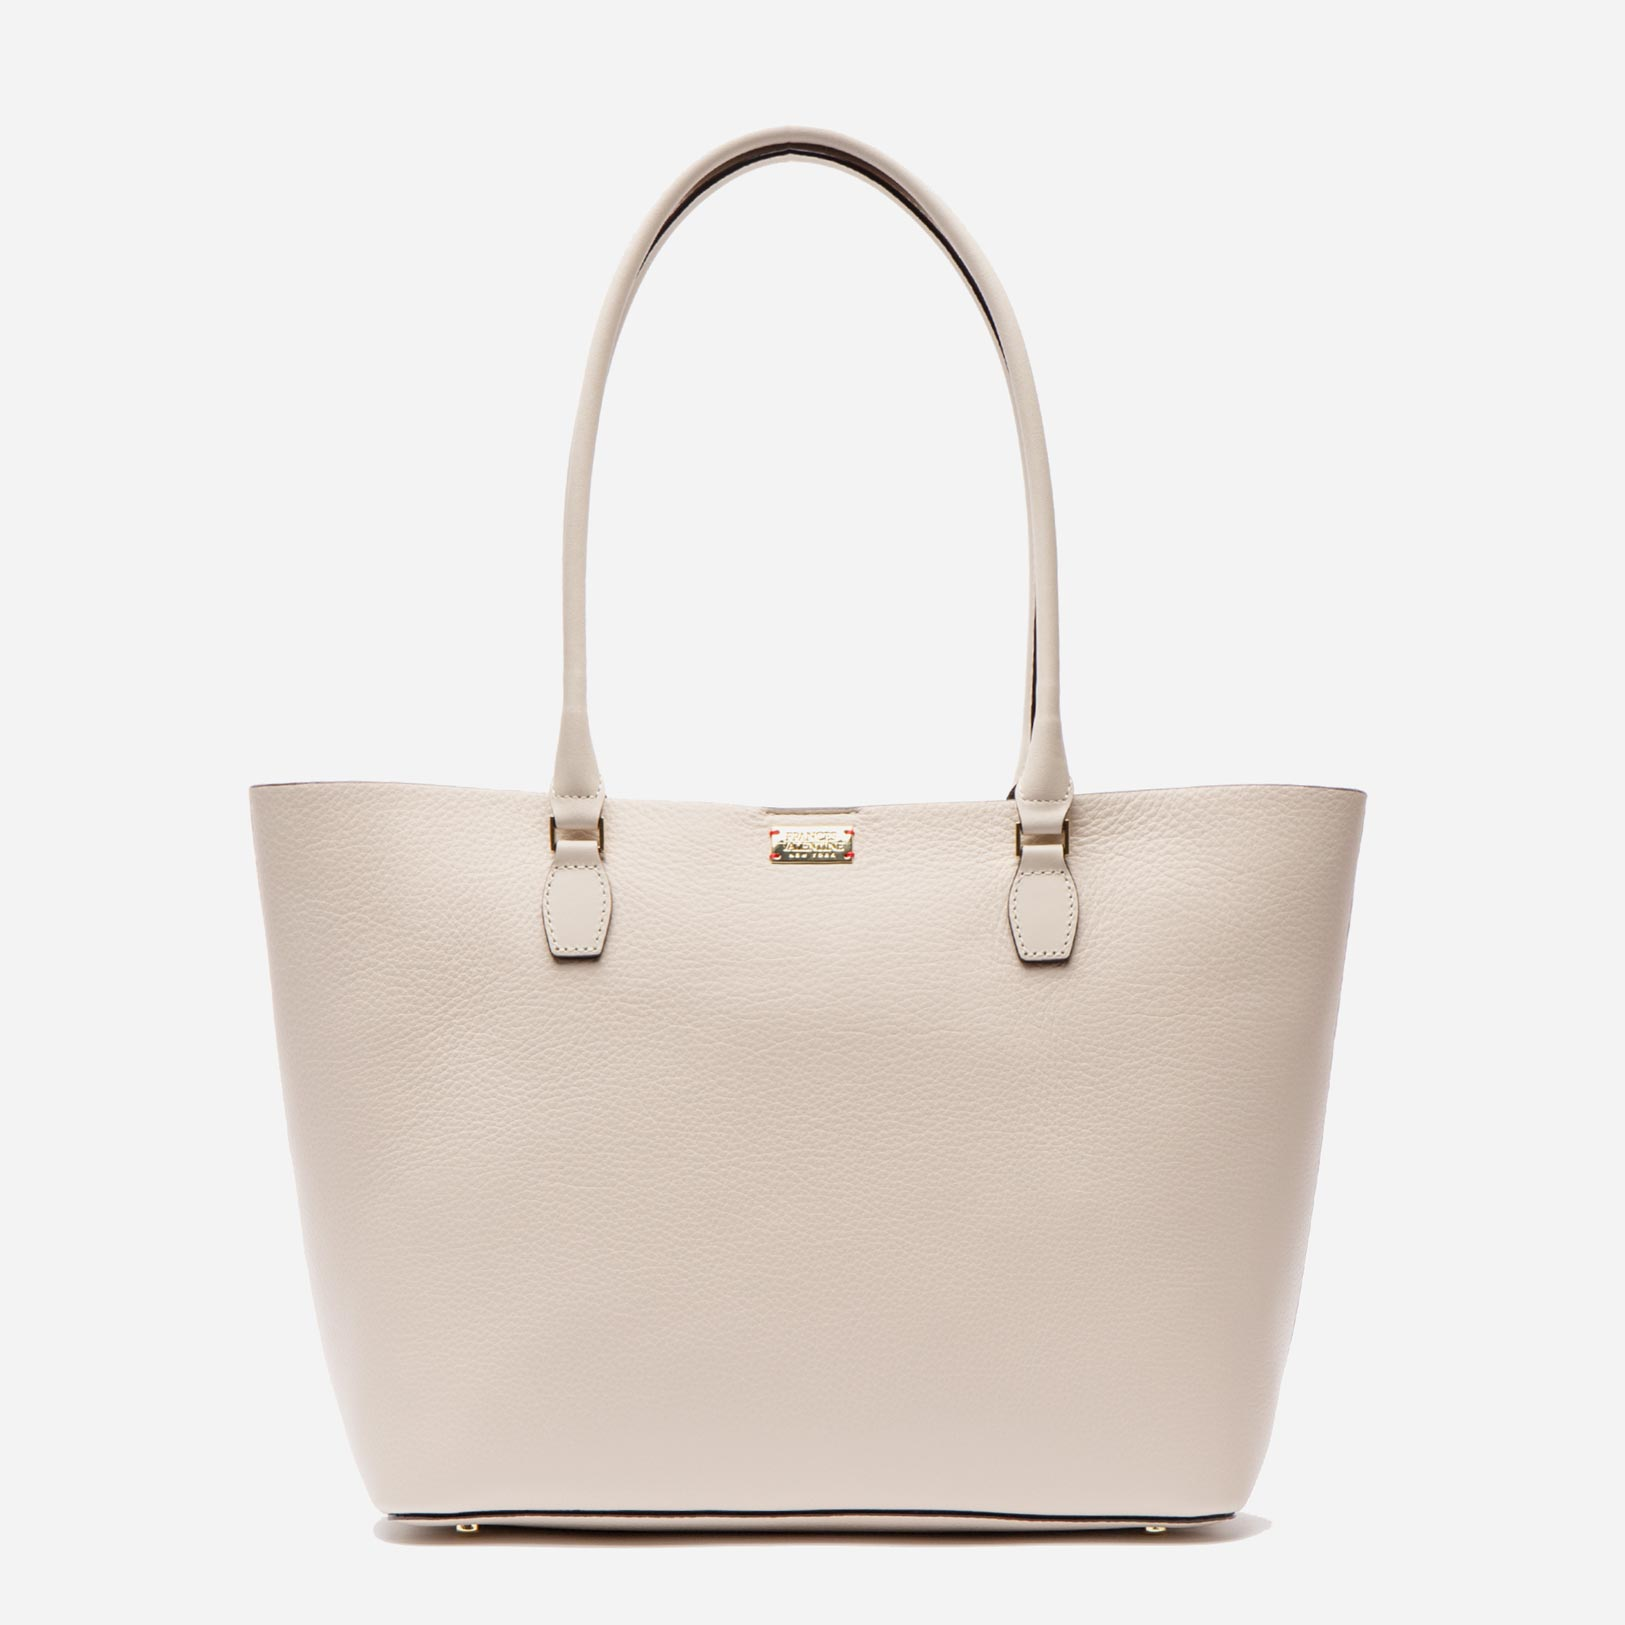 Medium Trixie Tumbled Leather Tote Oyster - Frances Valentine